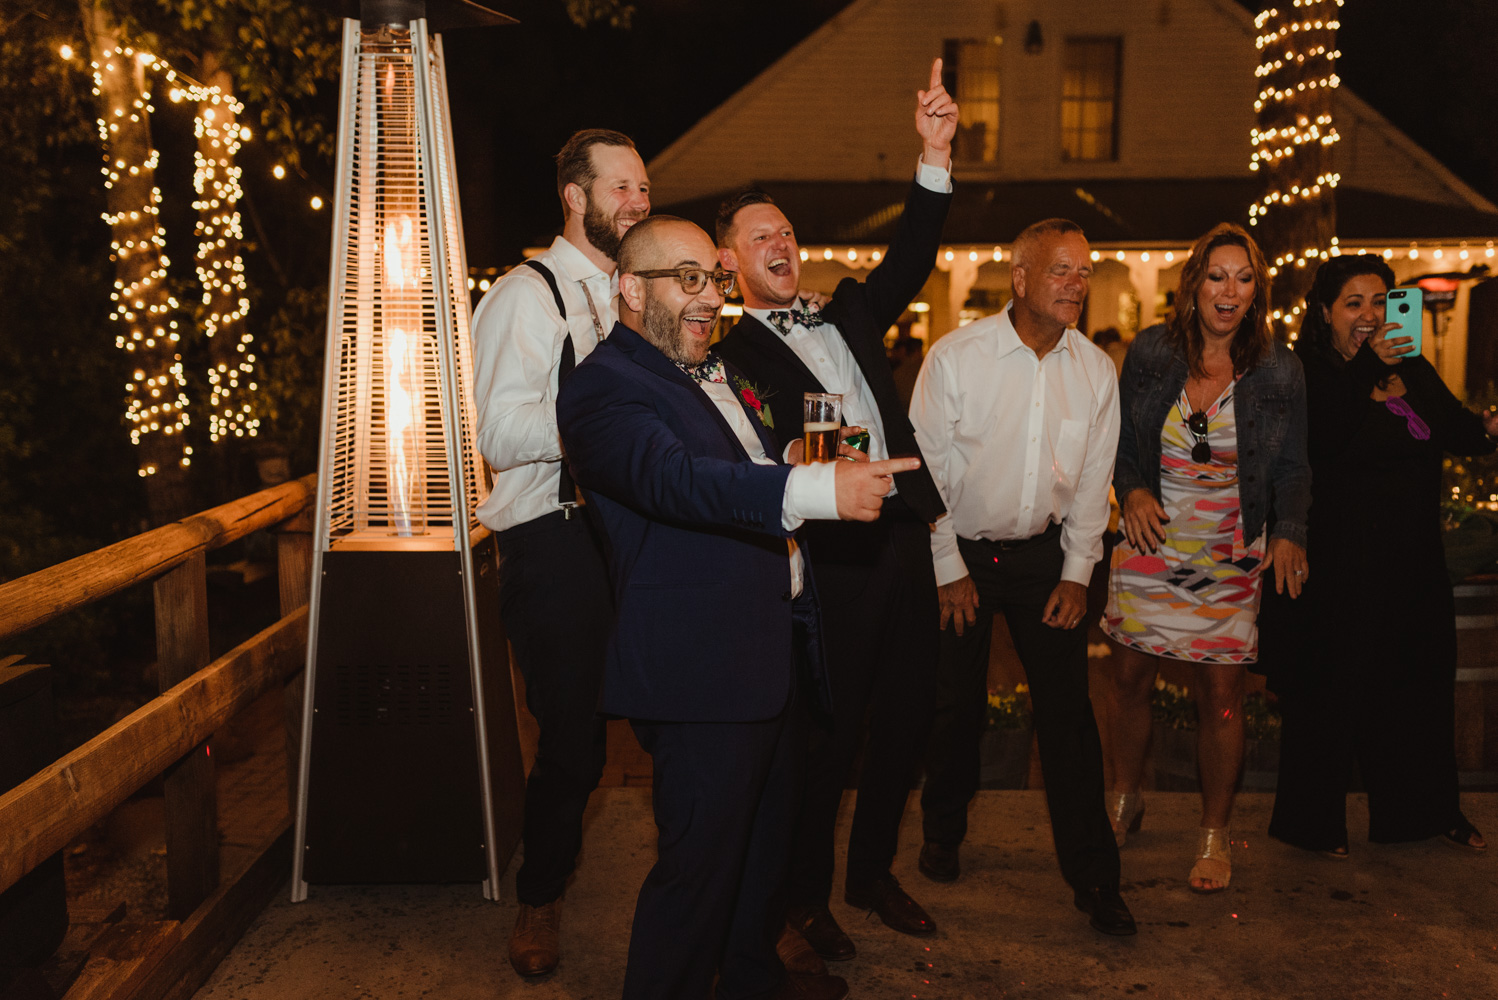 Twenty Mile House Wedding Photographer, photo of guests at the party